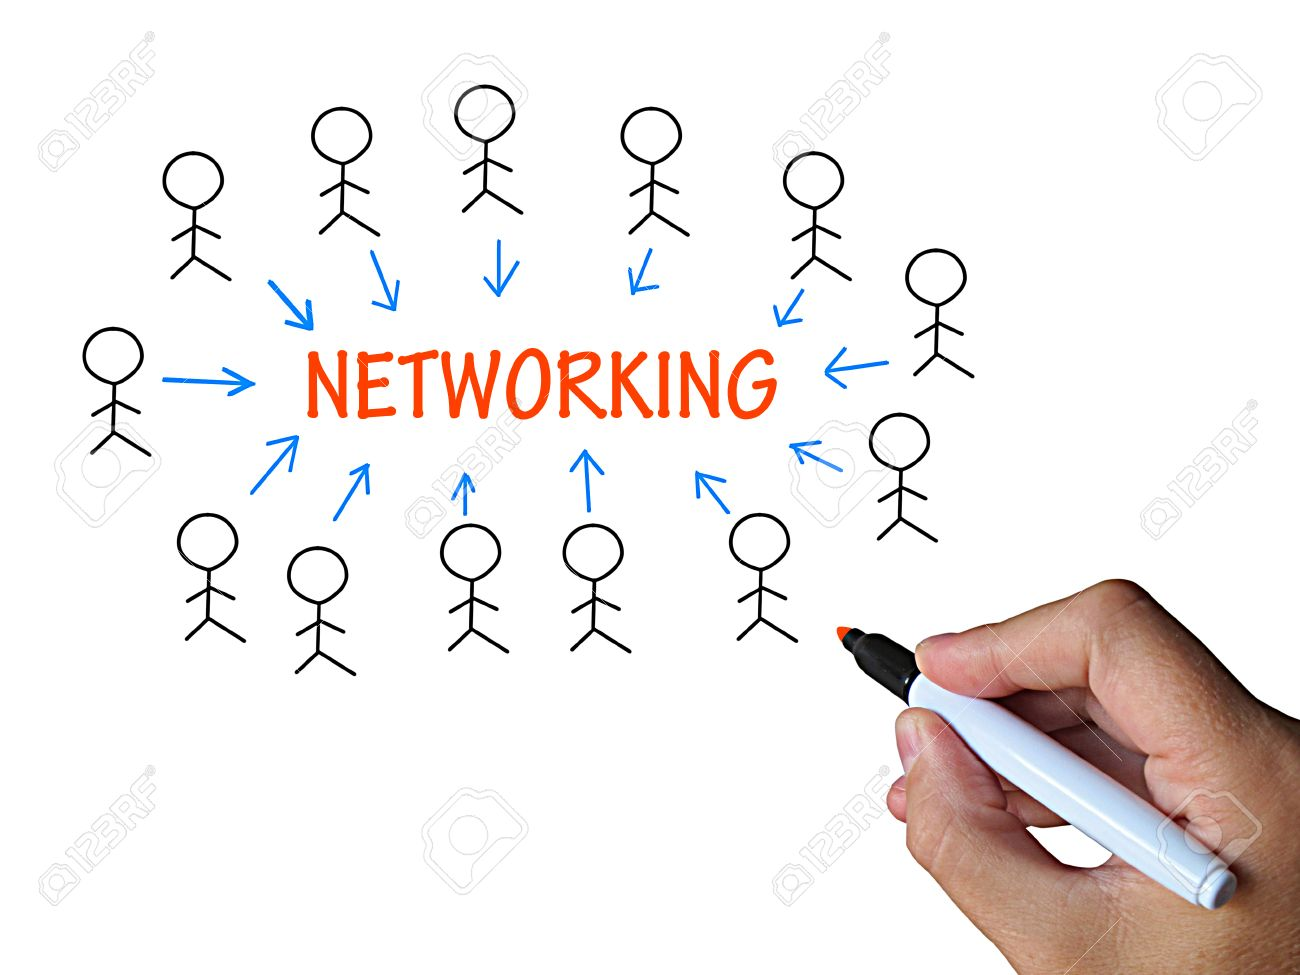 networking on whiteboard meaning business technology or online networking on whiteboard meaning business technology or online job interacting stock photo 27900004